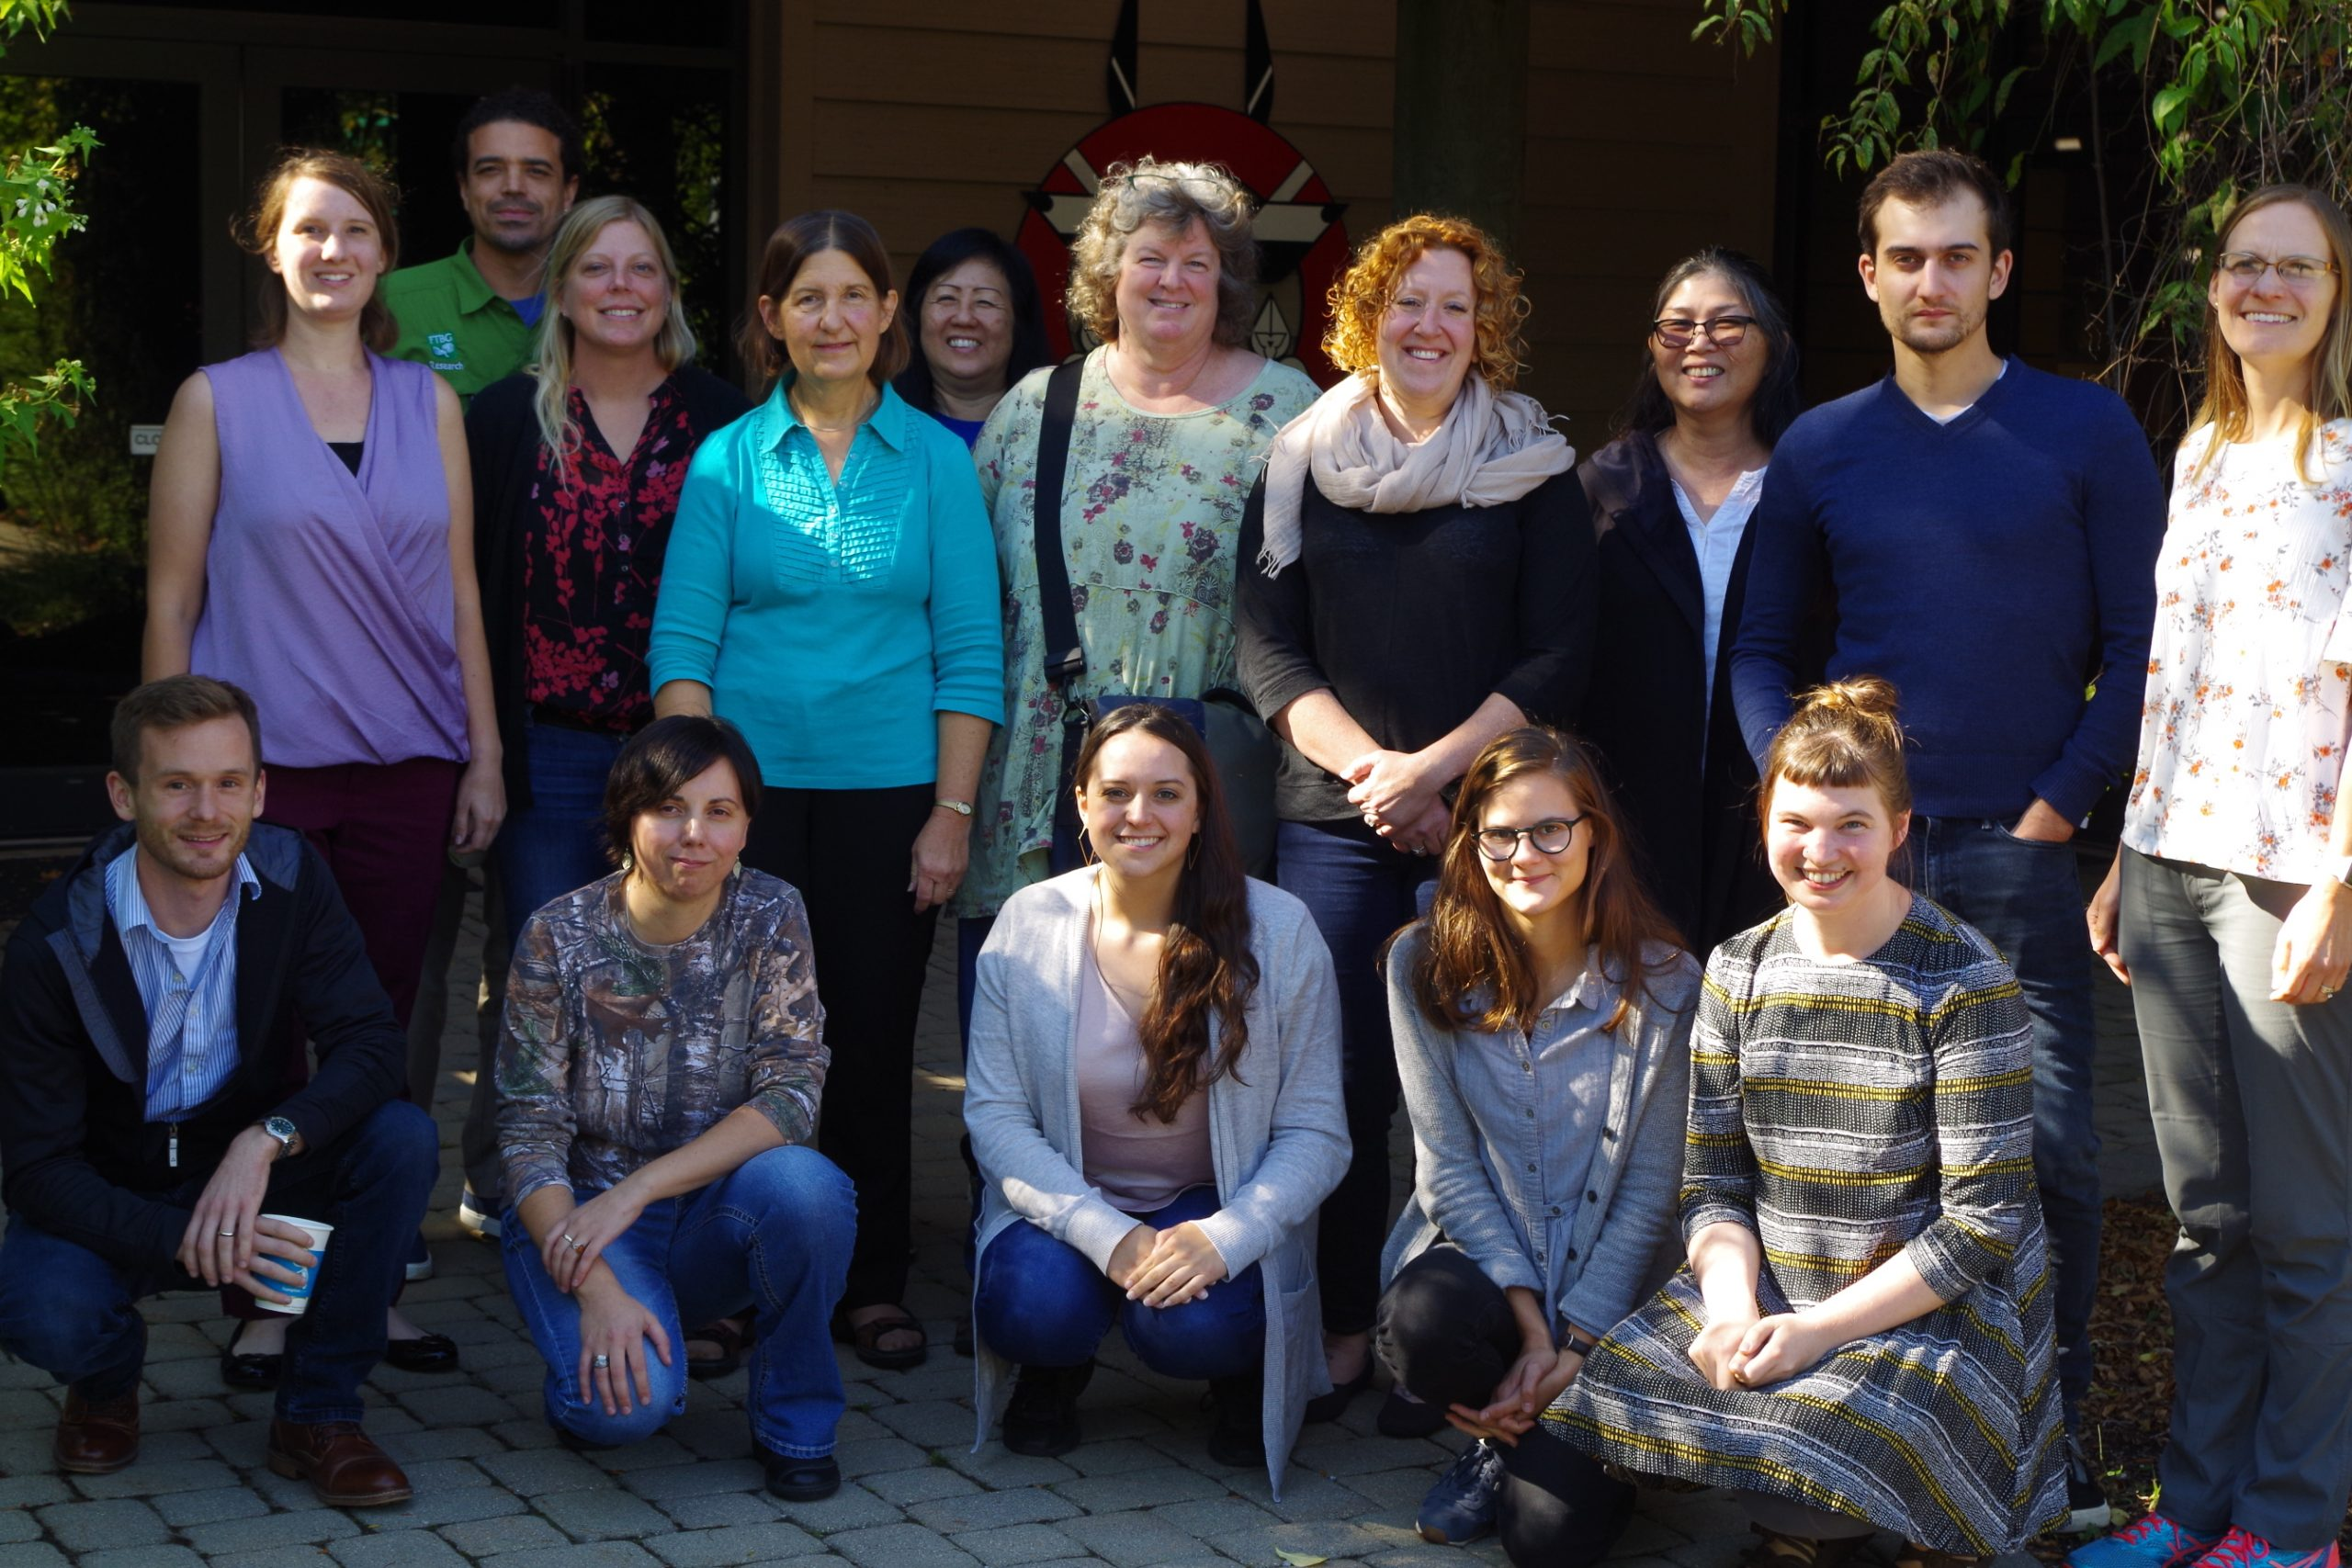 In 2018, the various partners of the IMLS supported project came together to review project plans and provide support to each other in their micropropagation and cryopreservation efforts.